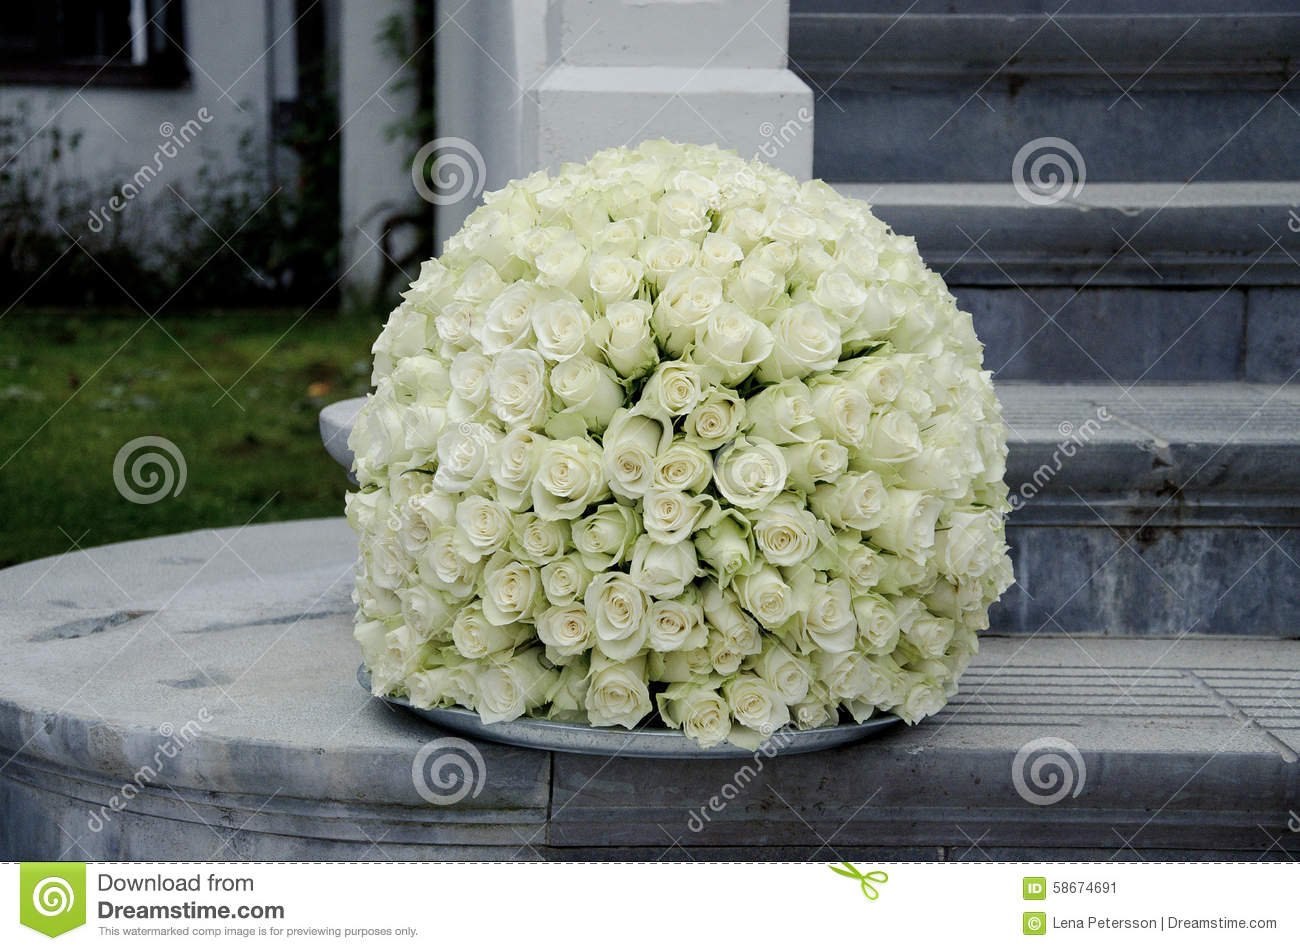 White Roses Centerpiece Flower Ball Stock Image Image Of Kissing